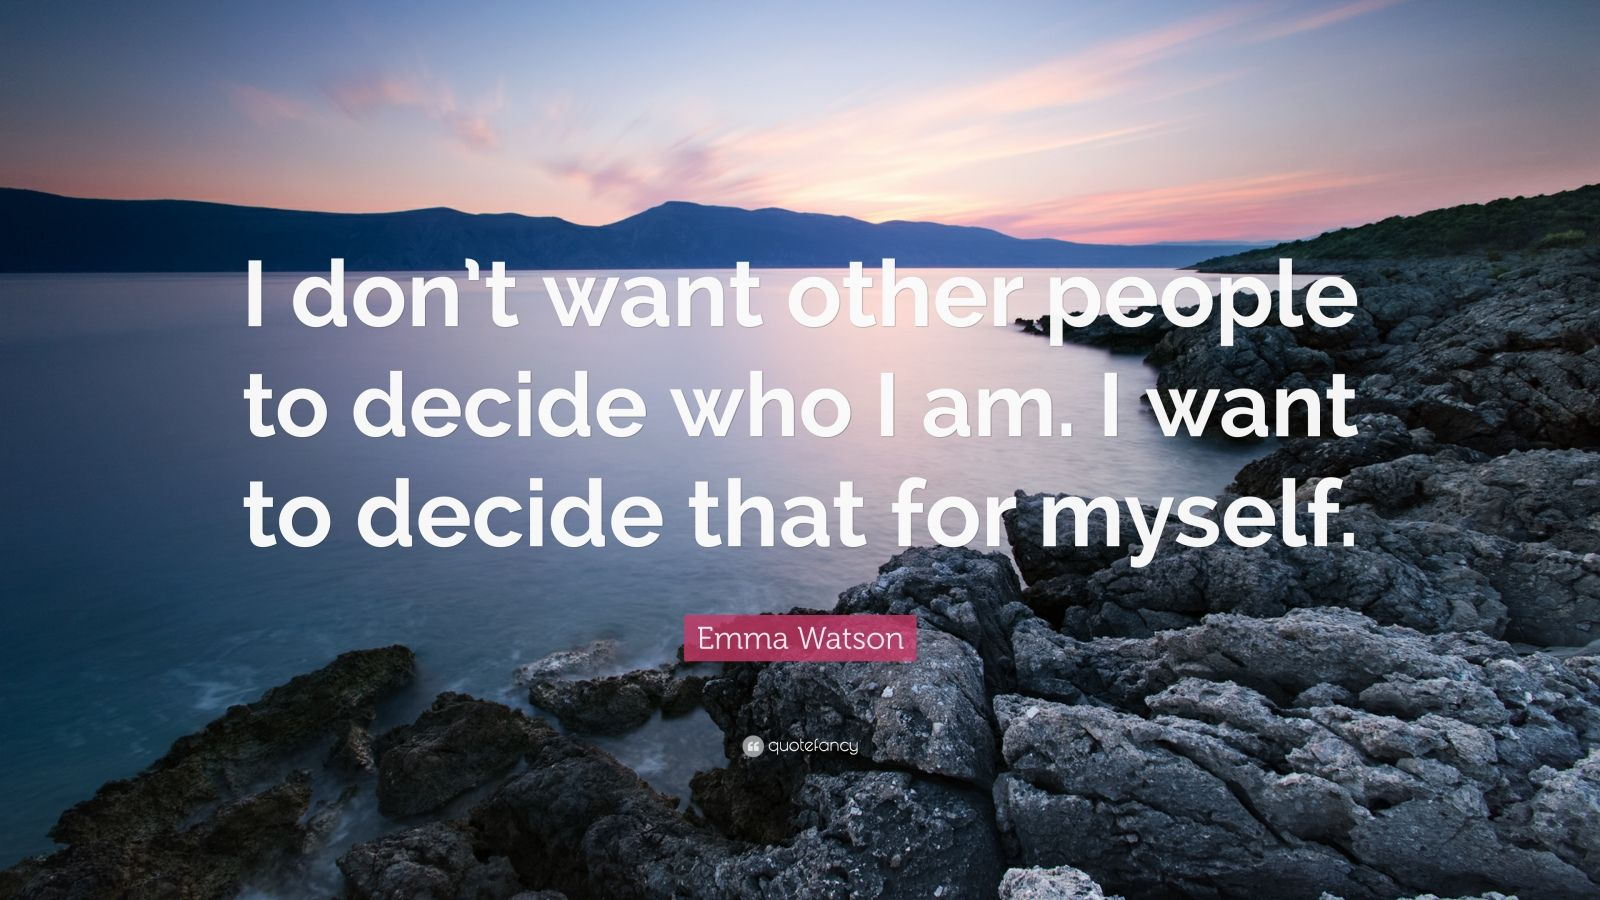 """Emma Watson Quote: """"I don't want other people to decide who I am. I want to decide that for myself."""""""